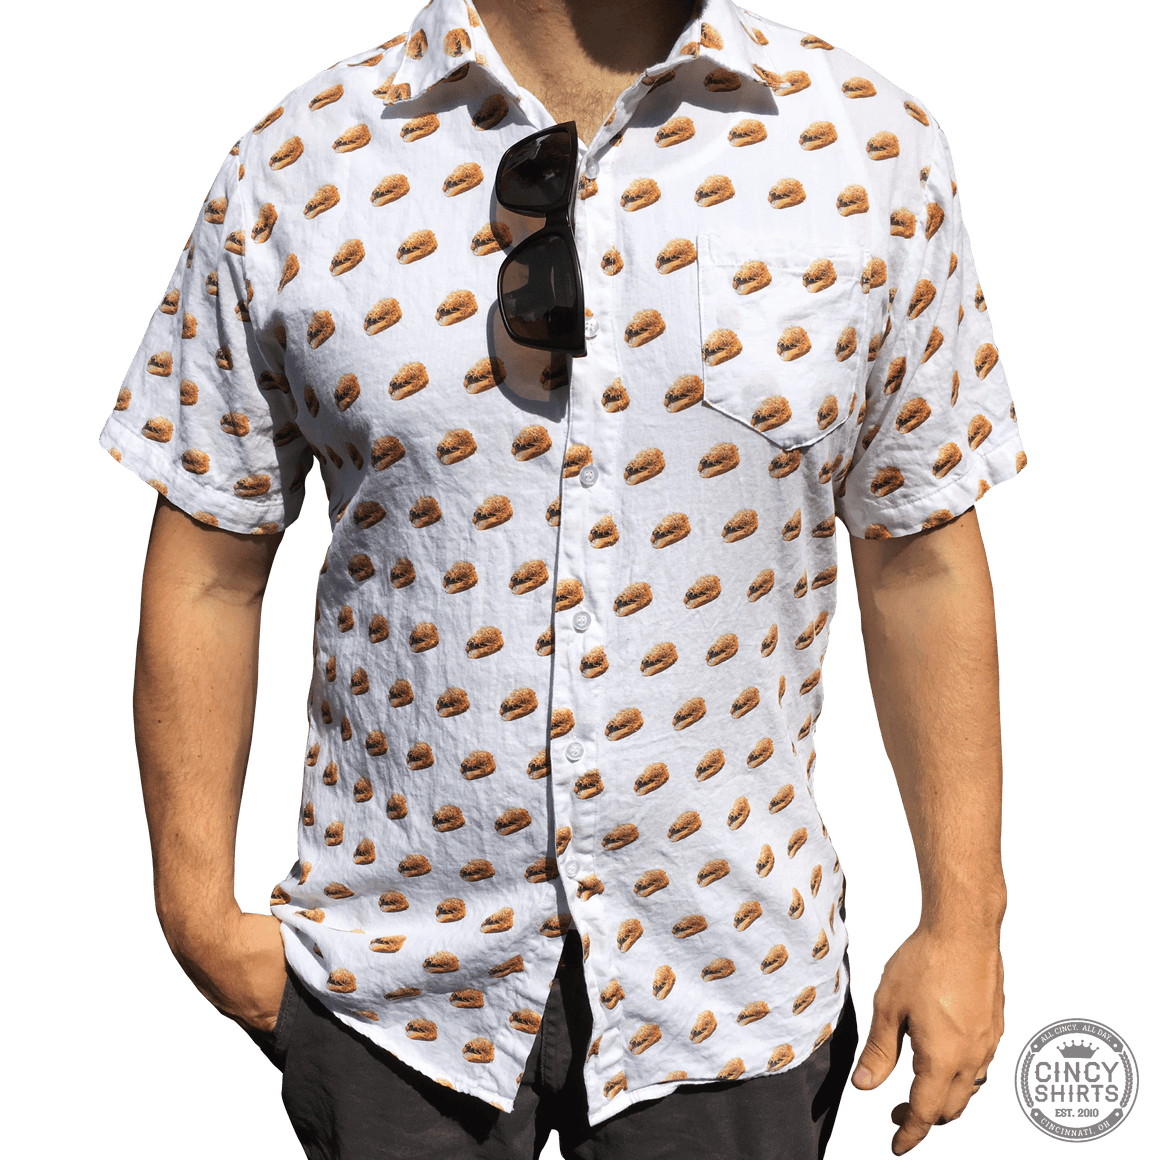 Cheese Coney Short Sleeve Button-Down - Cincy Shirts